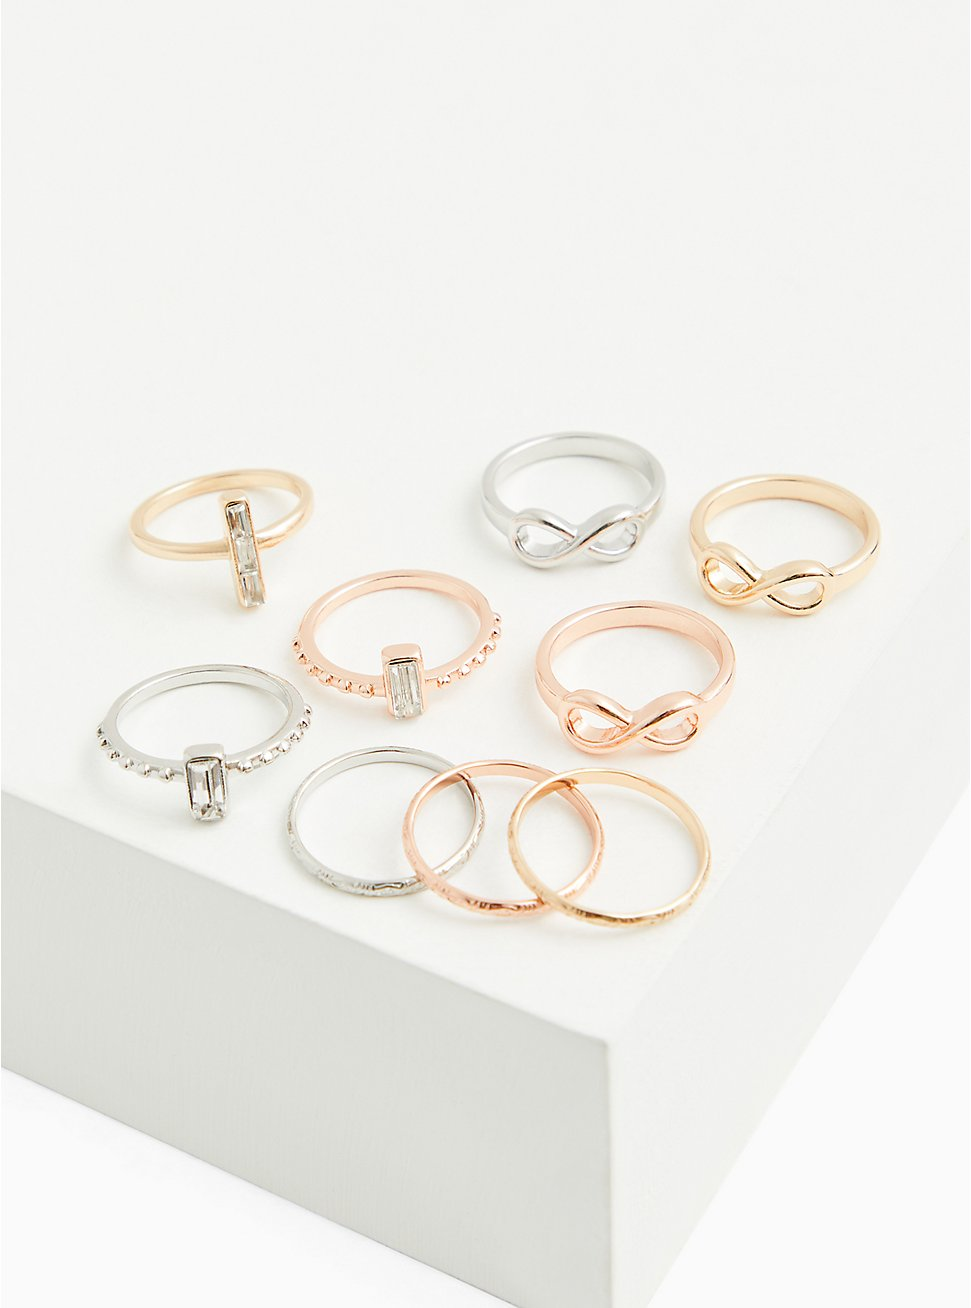 Rose Gold-Tone Infinity Ring Set - Set of 9, MULTI, hi-res